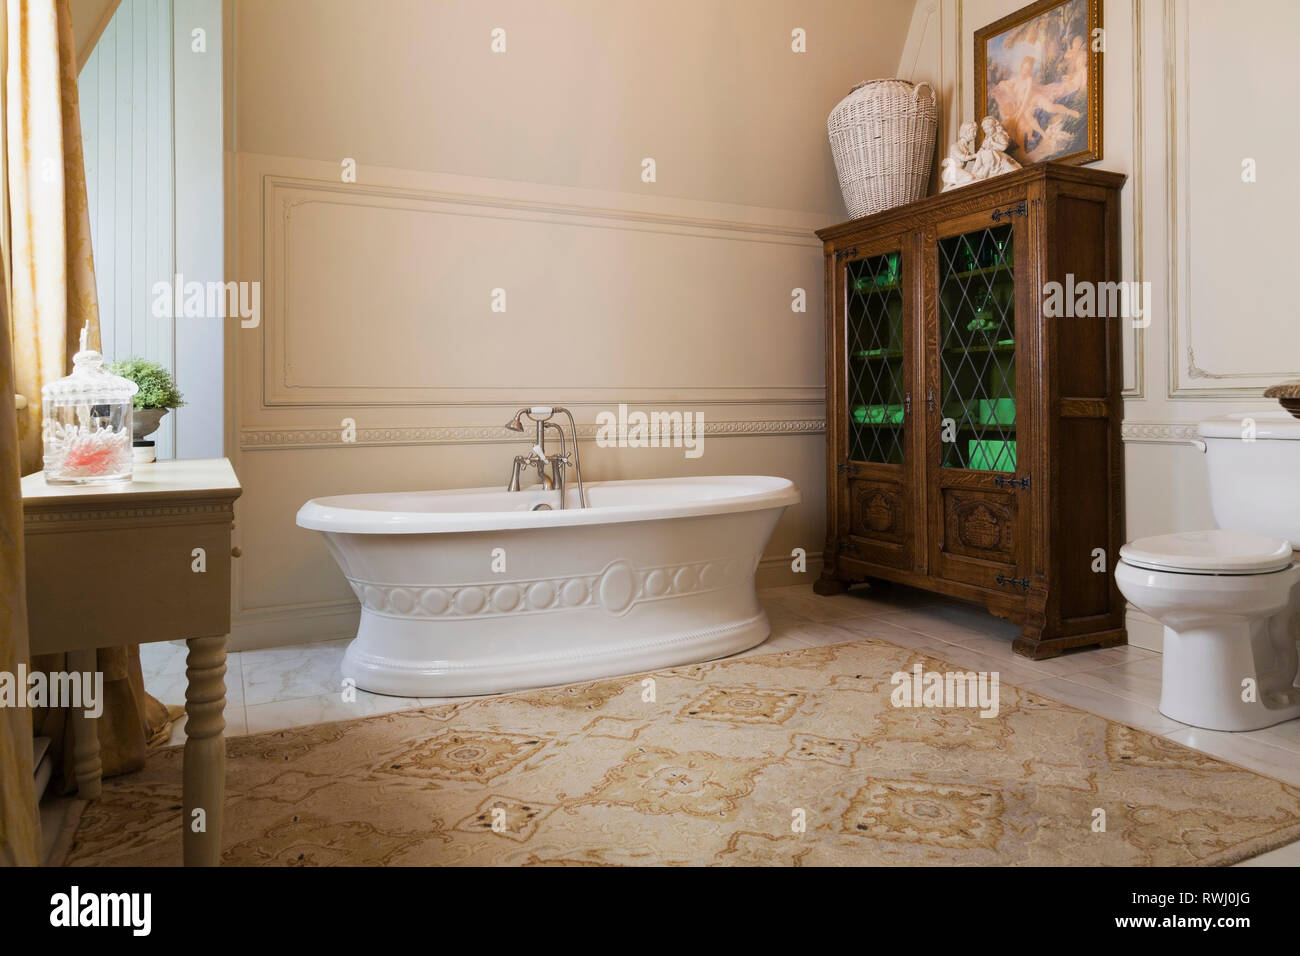 Freestanding boat style bathtub and wooden cabinet with leaded glass panels in the master bathroom on the upstairs floor inside a 2006 reproduction of - Stock Image